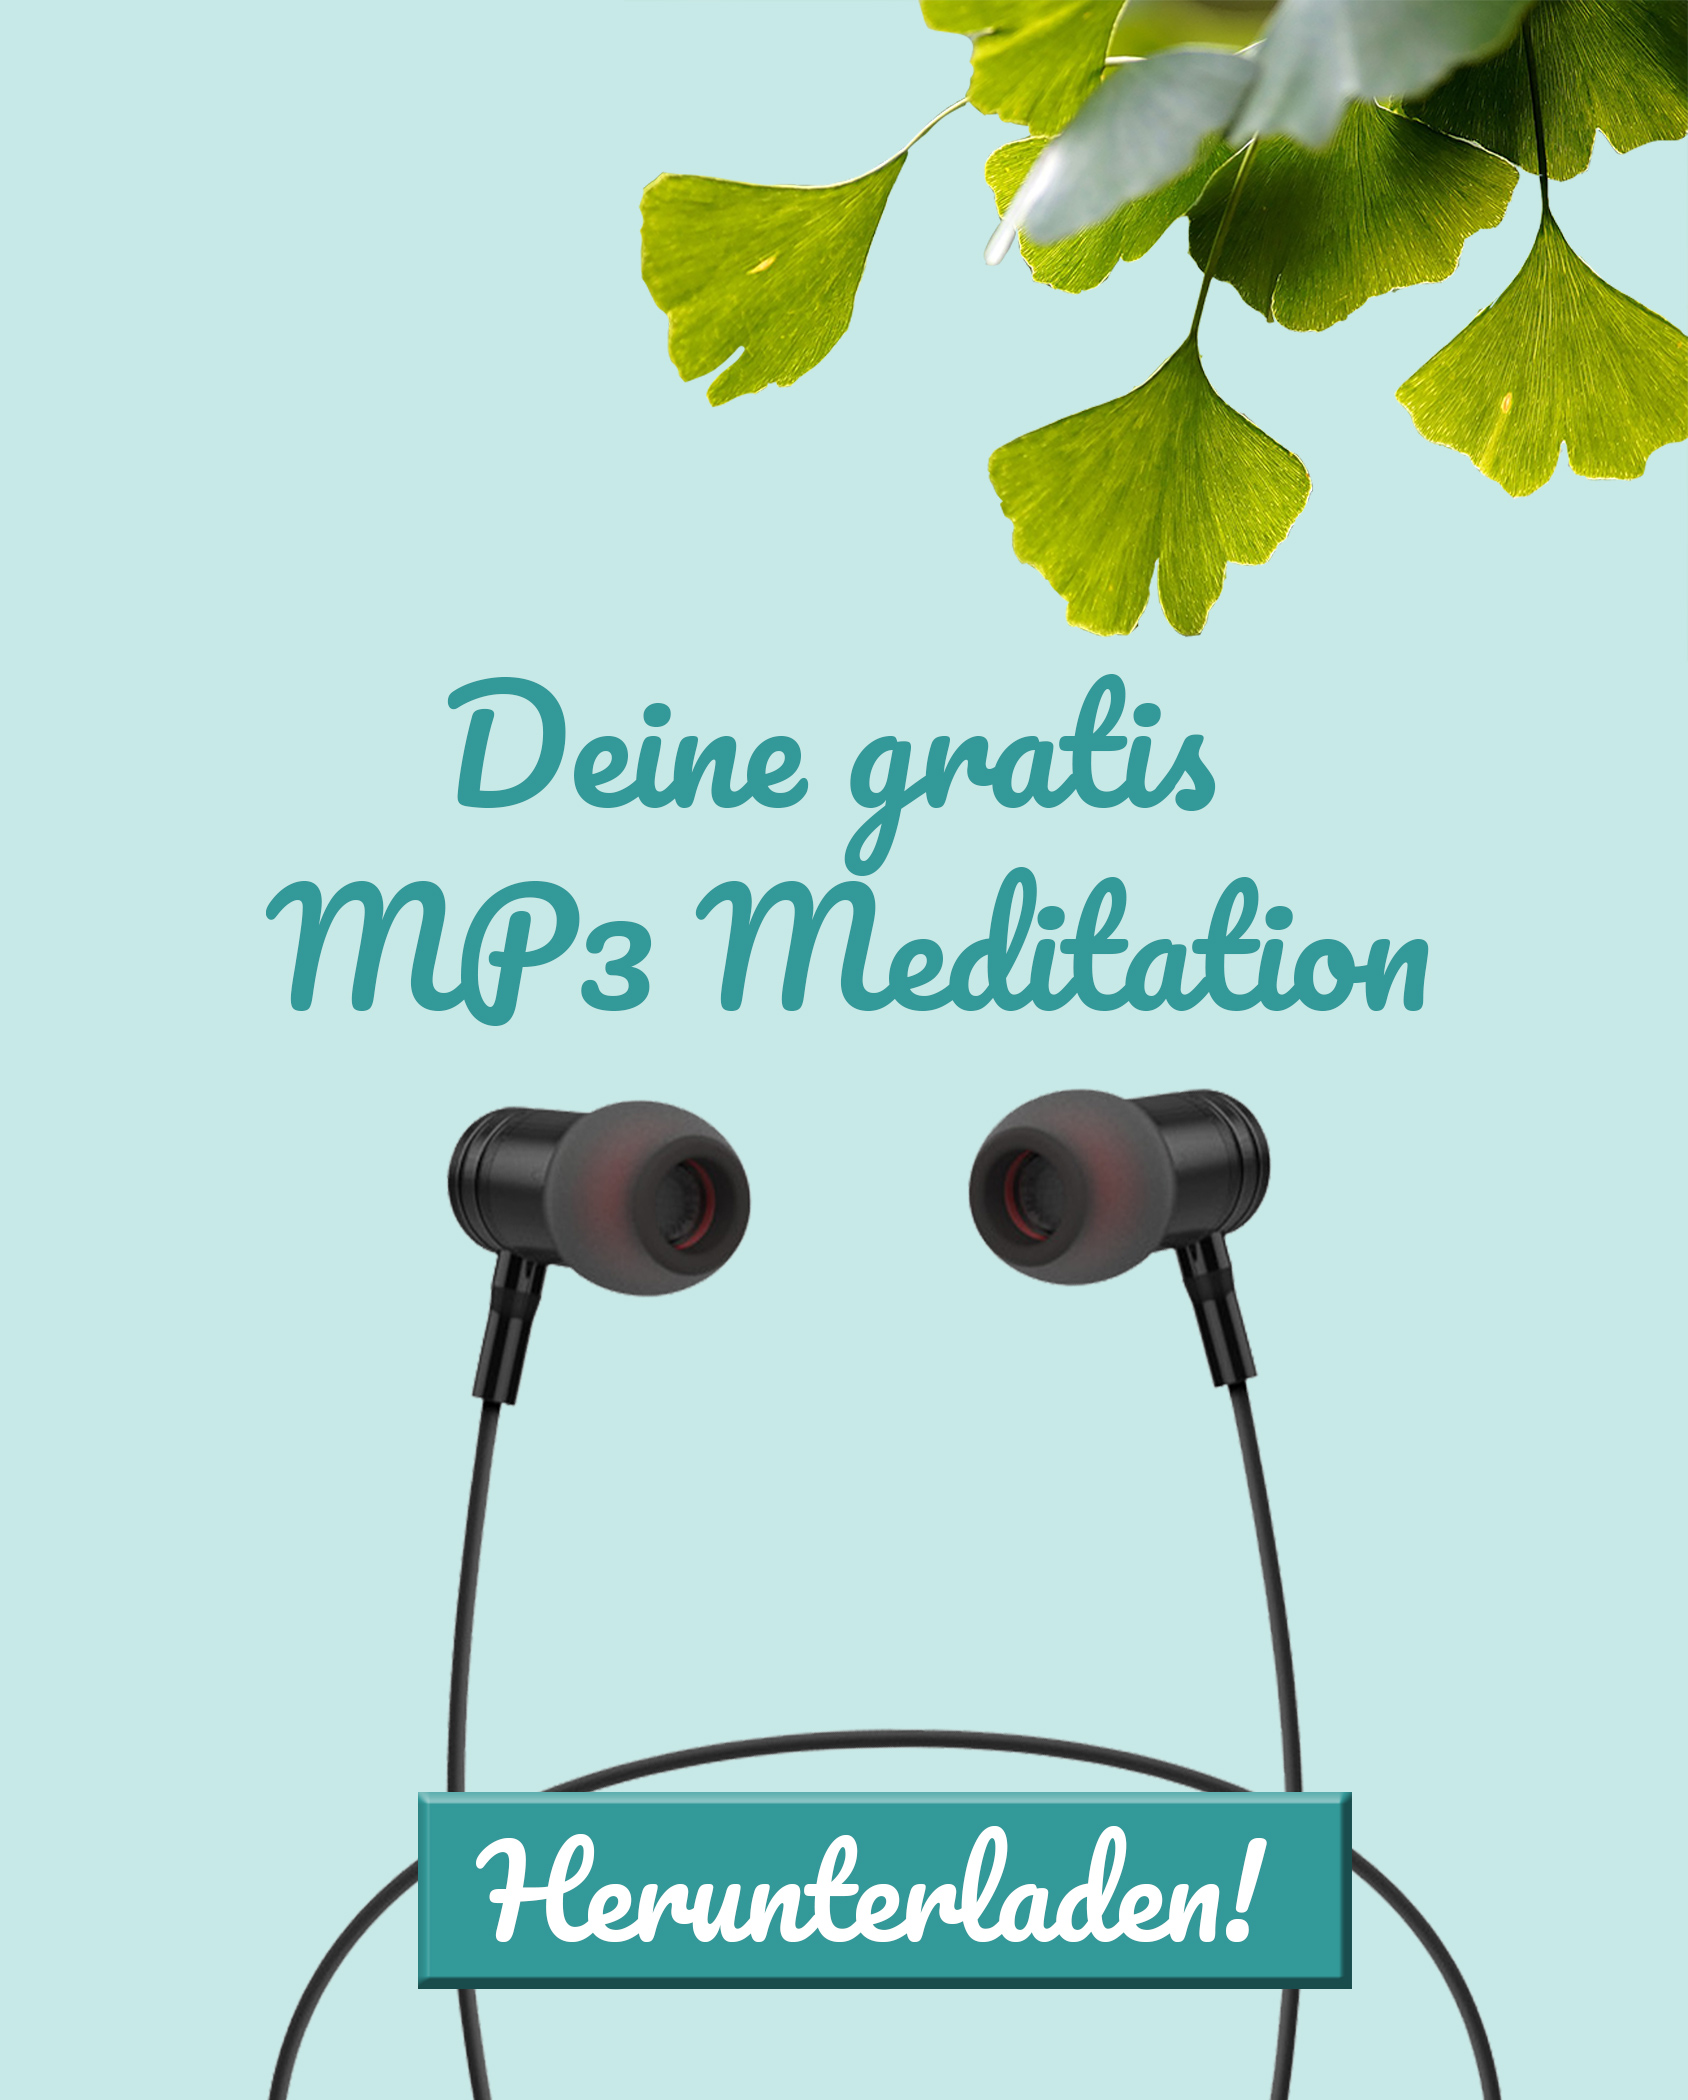 Gratis Mp3 Meditation von Sarah M. Richter